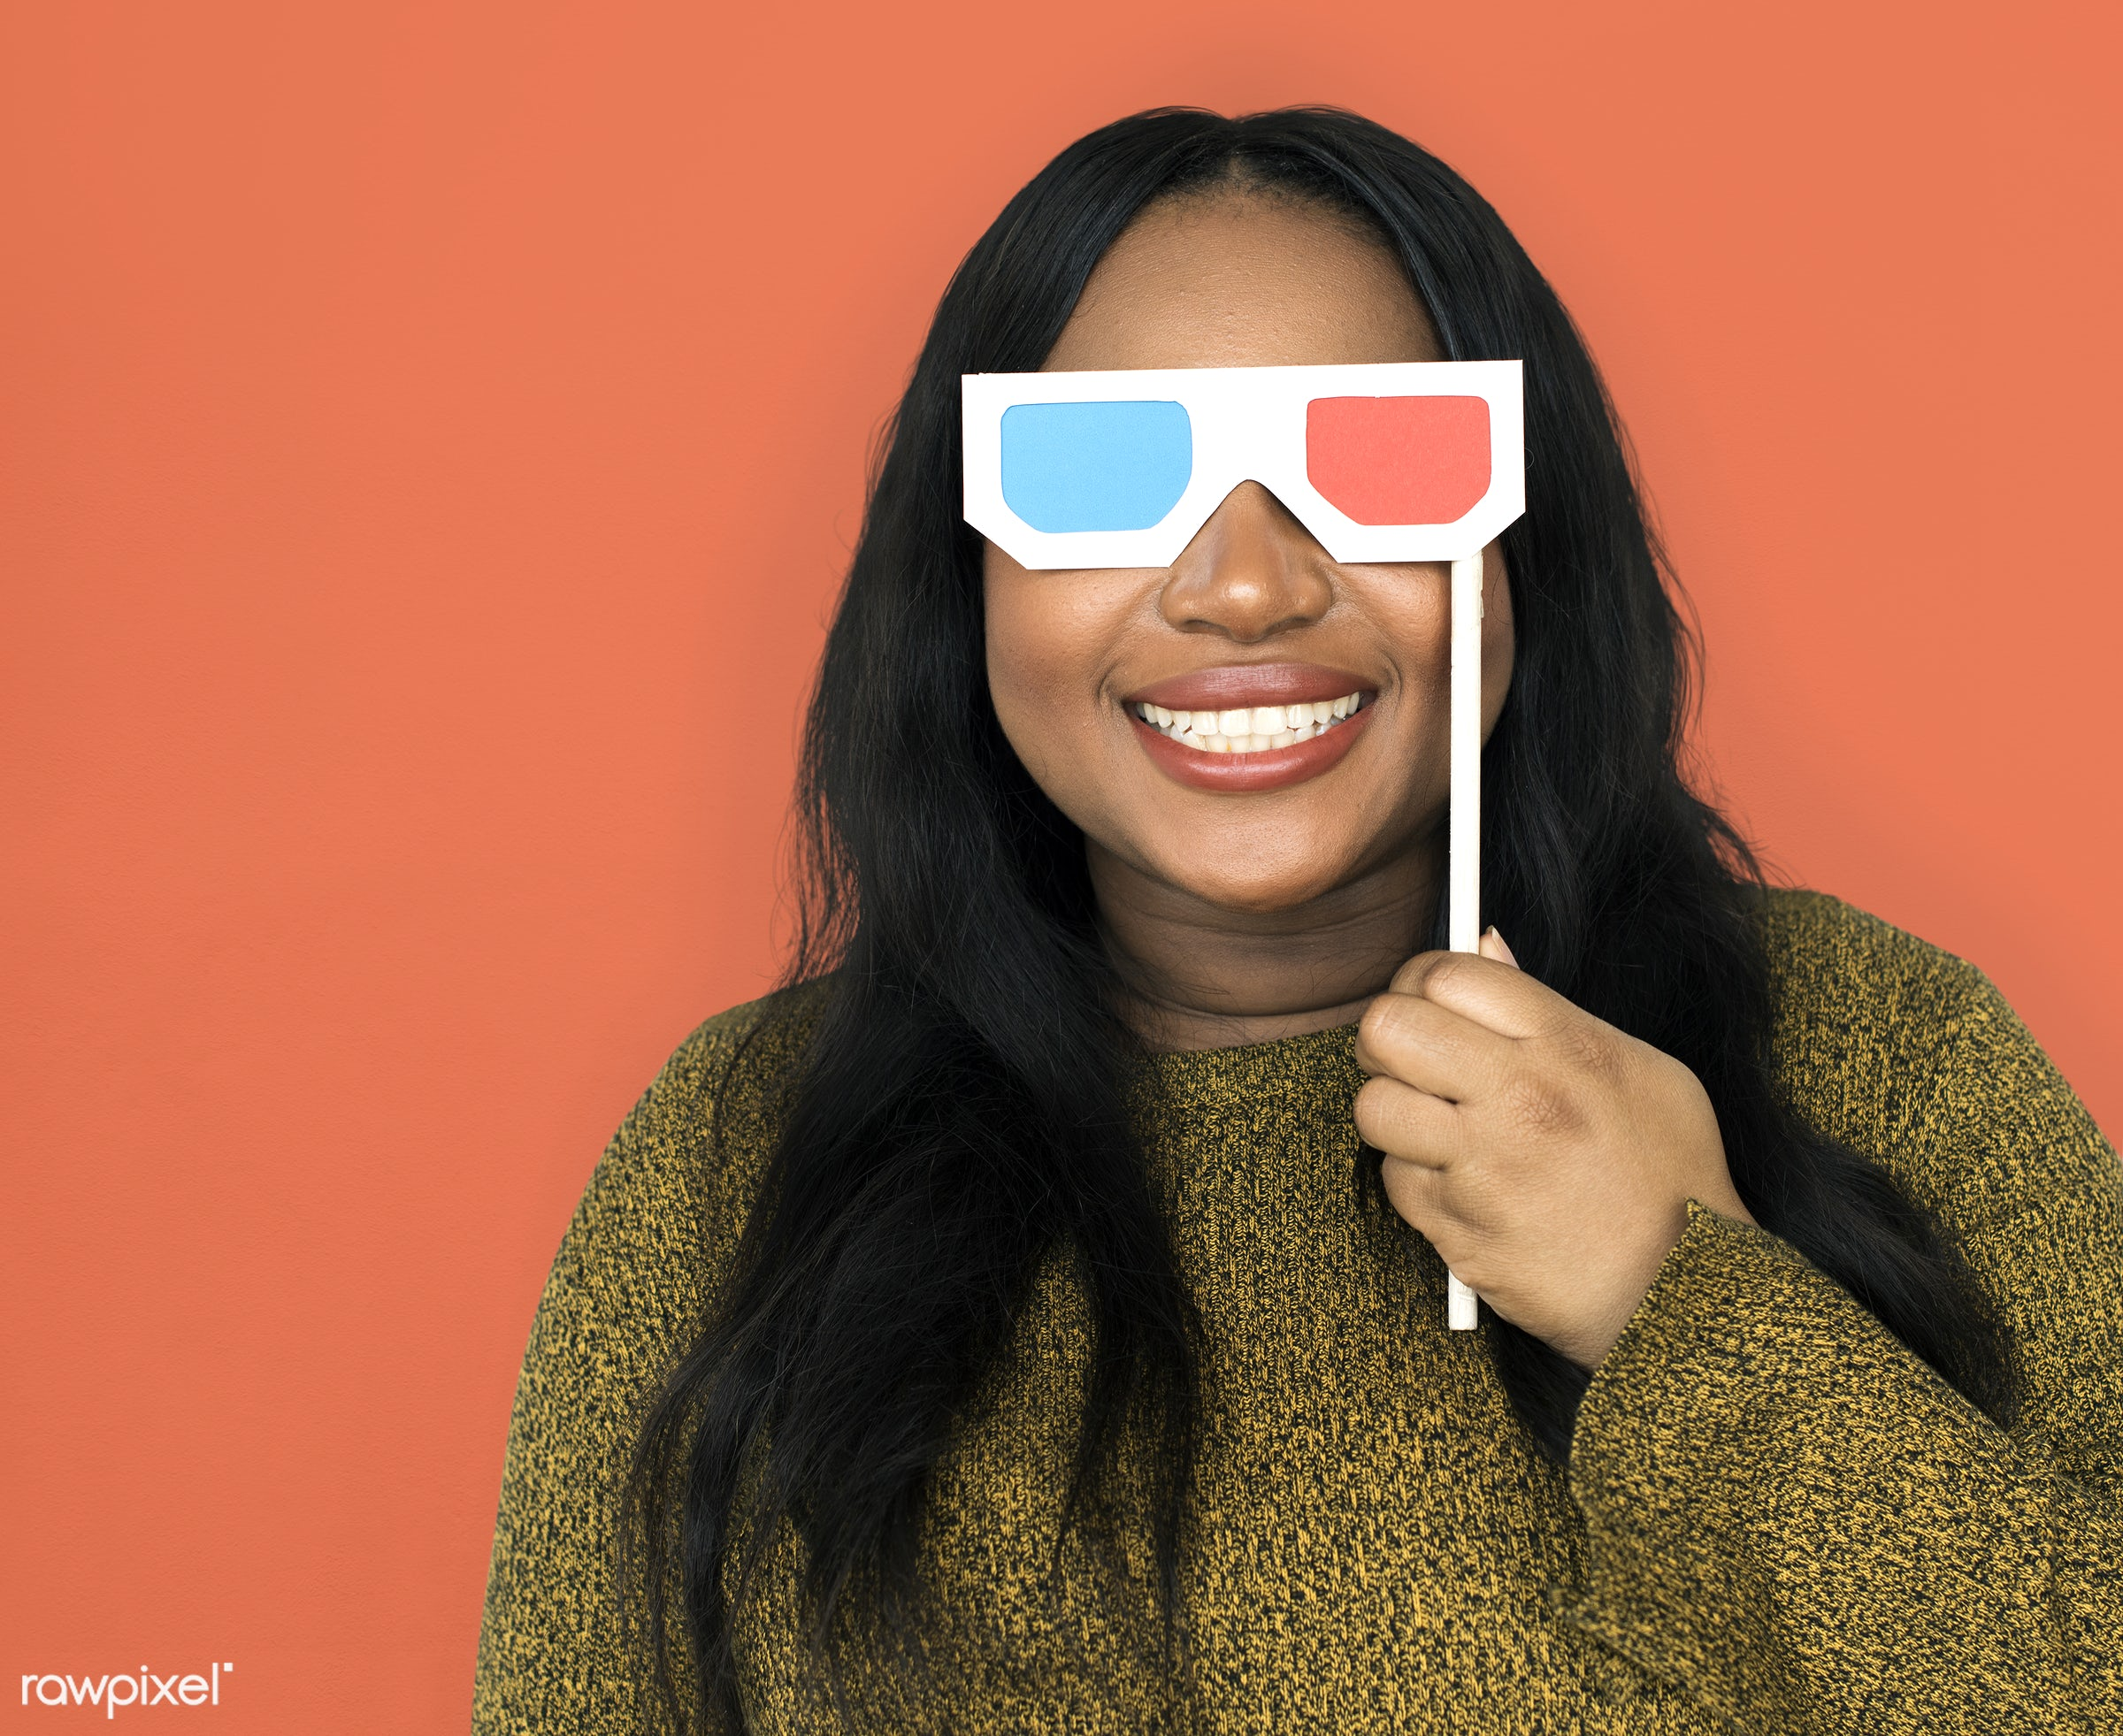 expression, person, recreation, people, race, three dimensional, 3-d glasses, woman, black, 3d blue ray, activity, isolated...